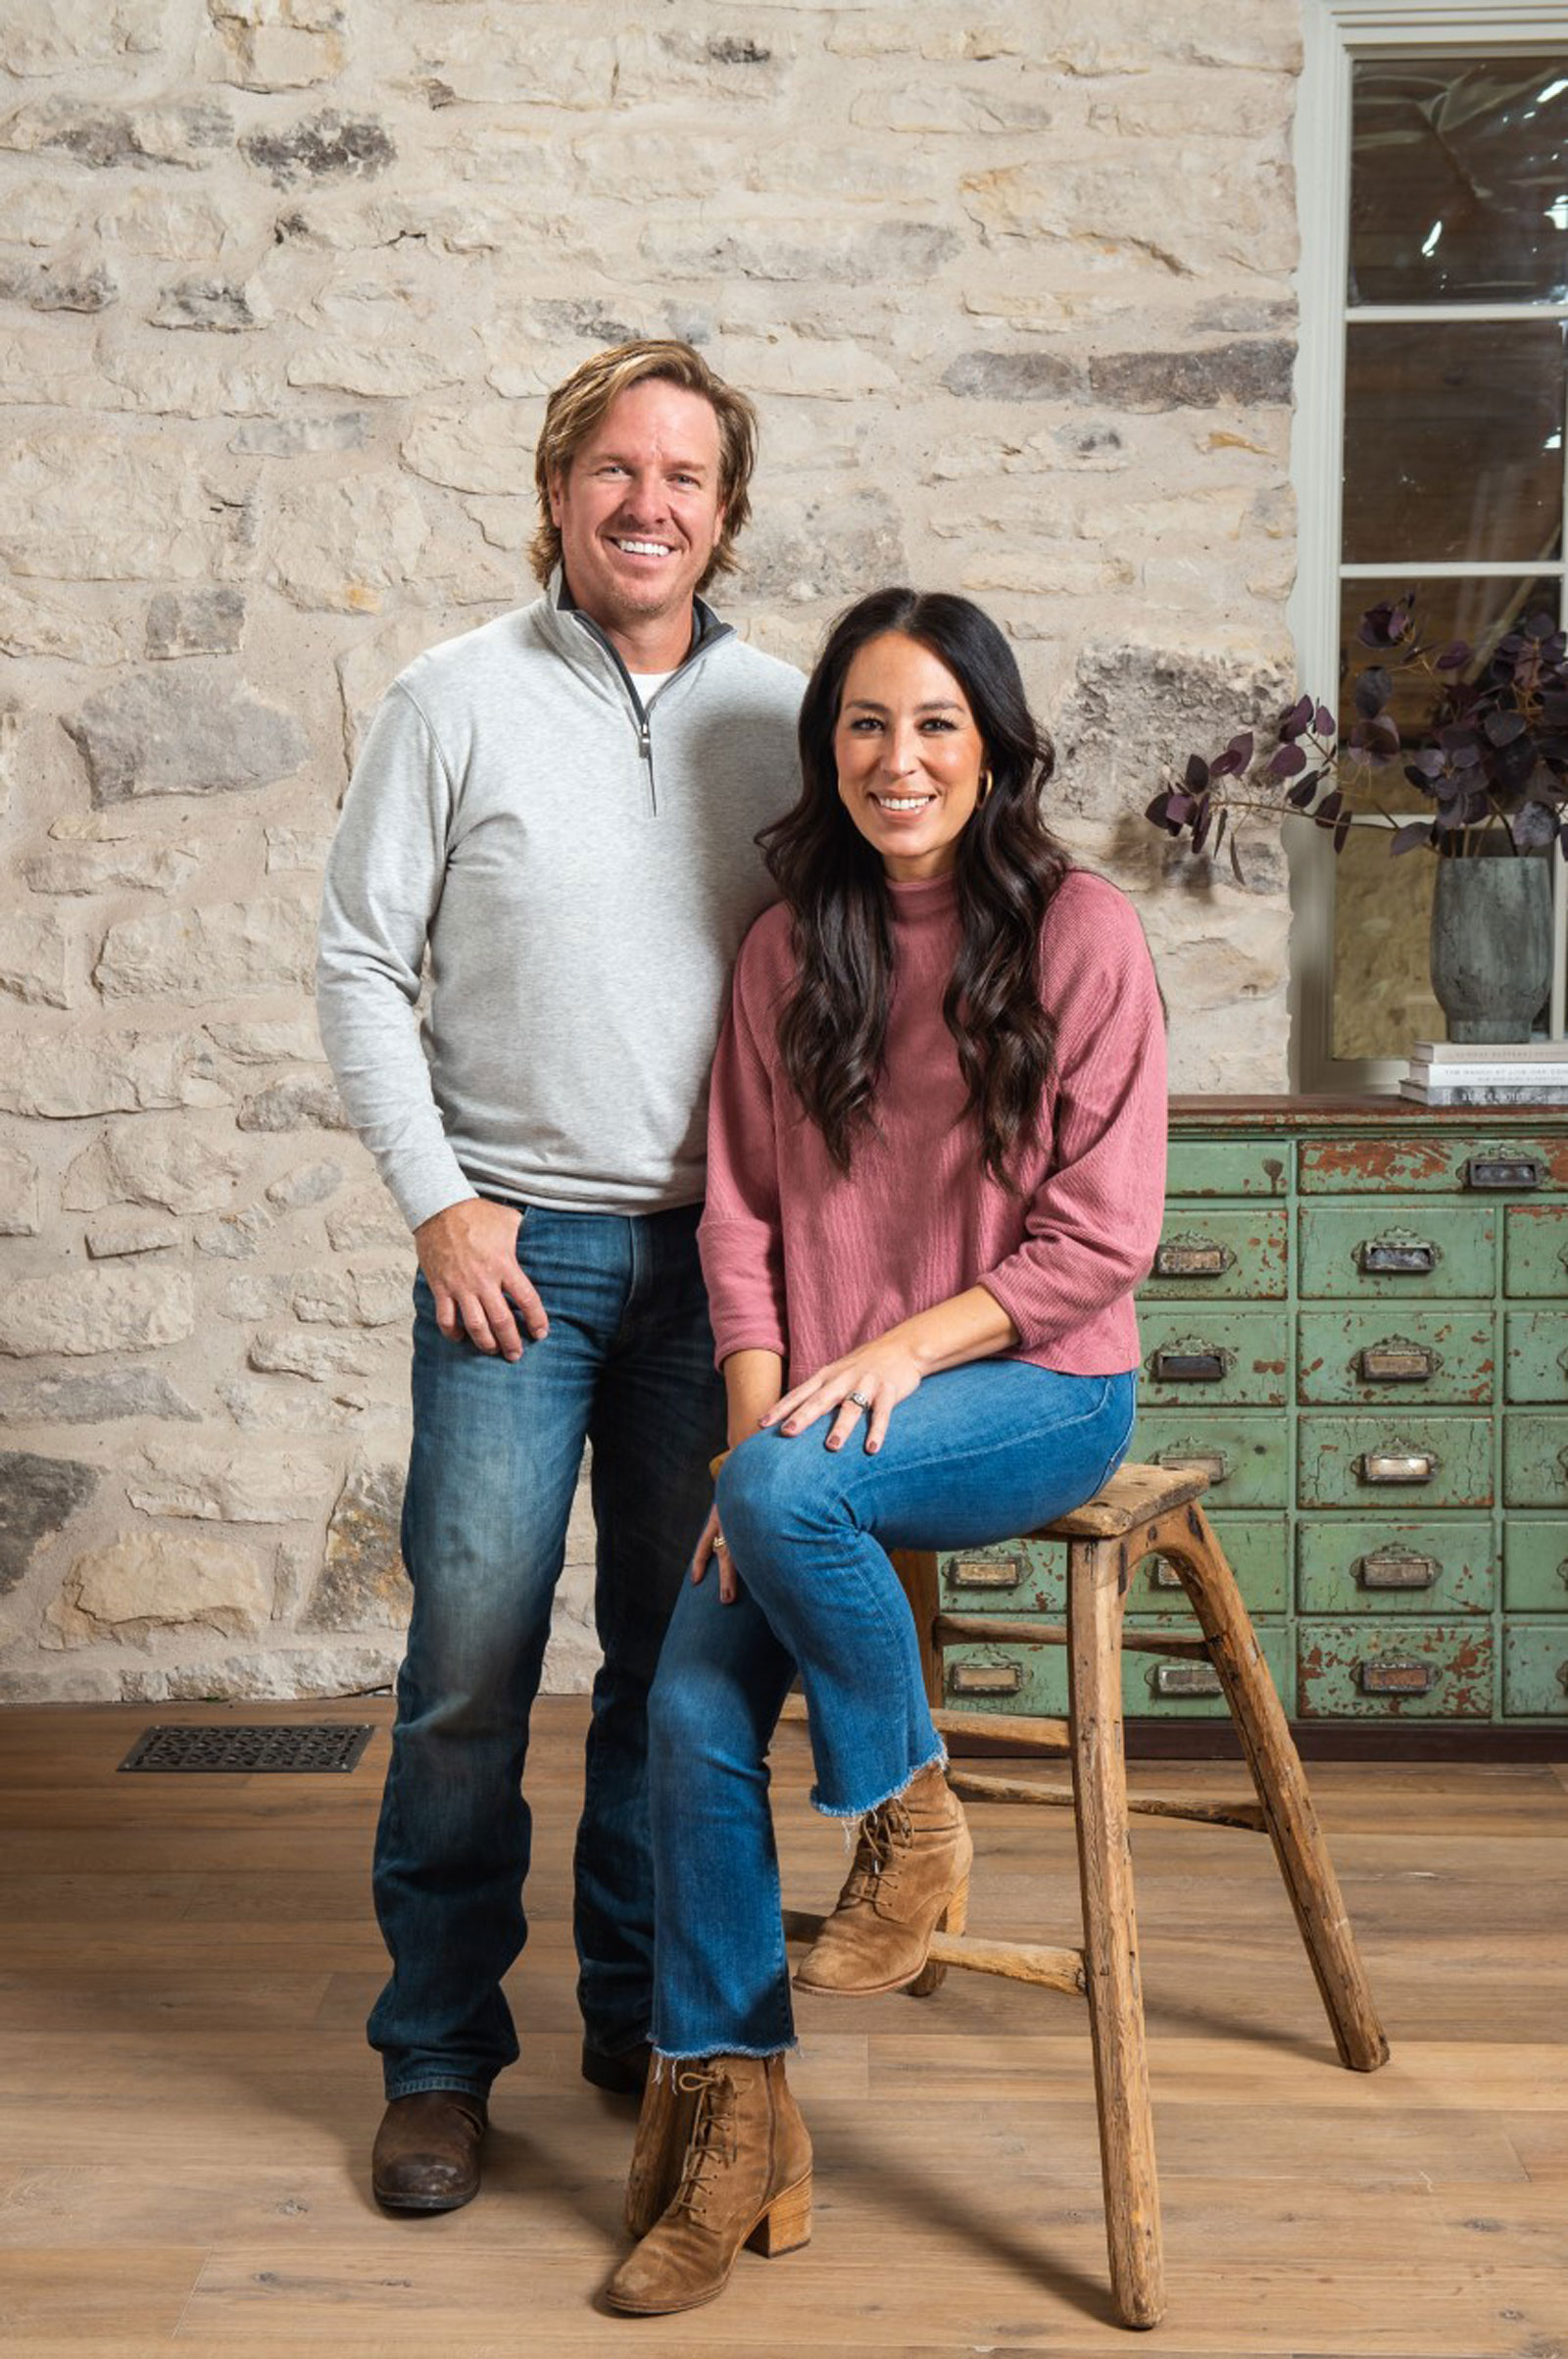 Chip and Joanna Gaines bringing 'Fixer Upper' back